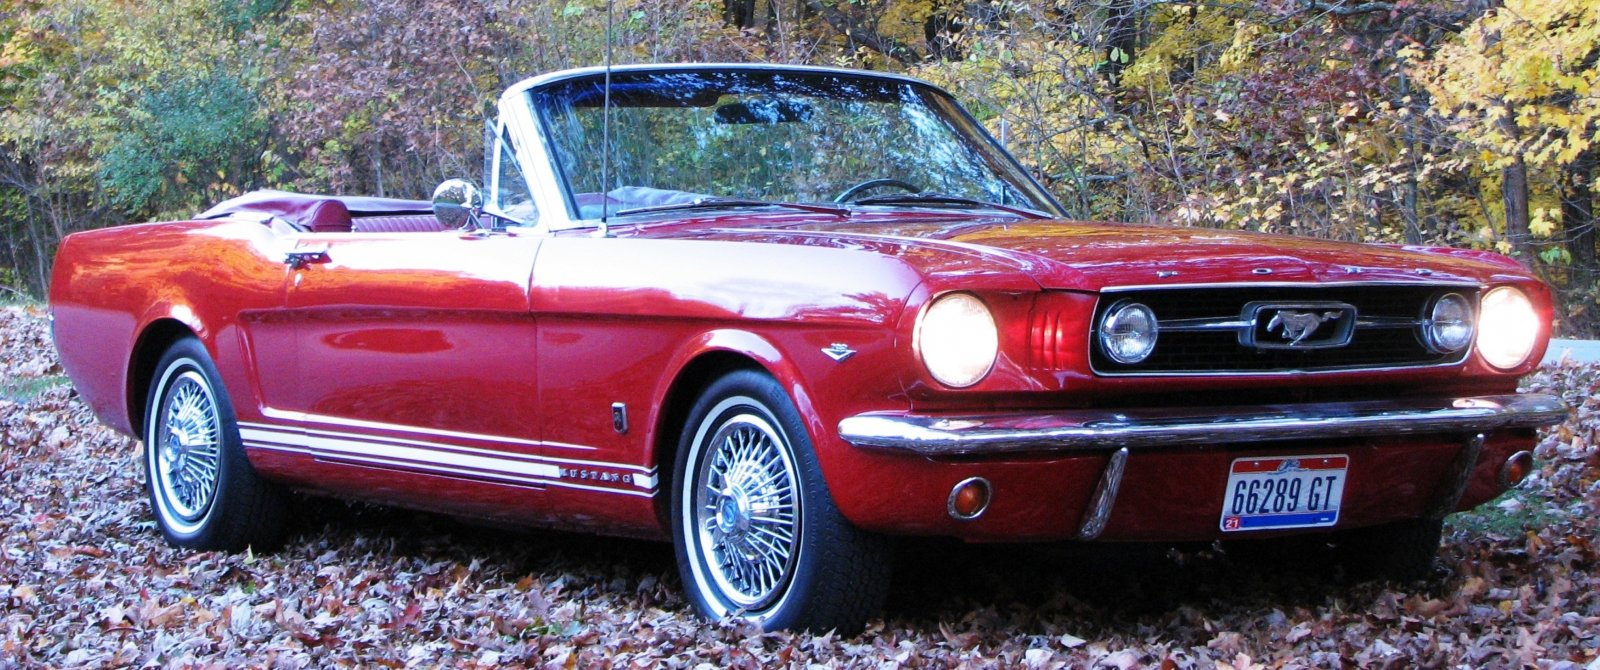 Click image for larger version  Name:MustangGT.jpg Views:158 Size:328.3 KB ID:59760